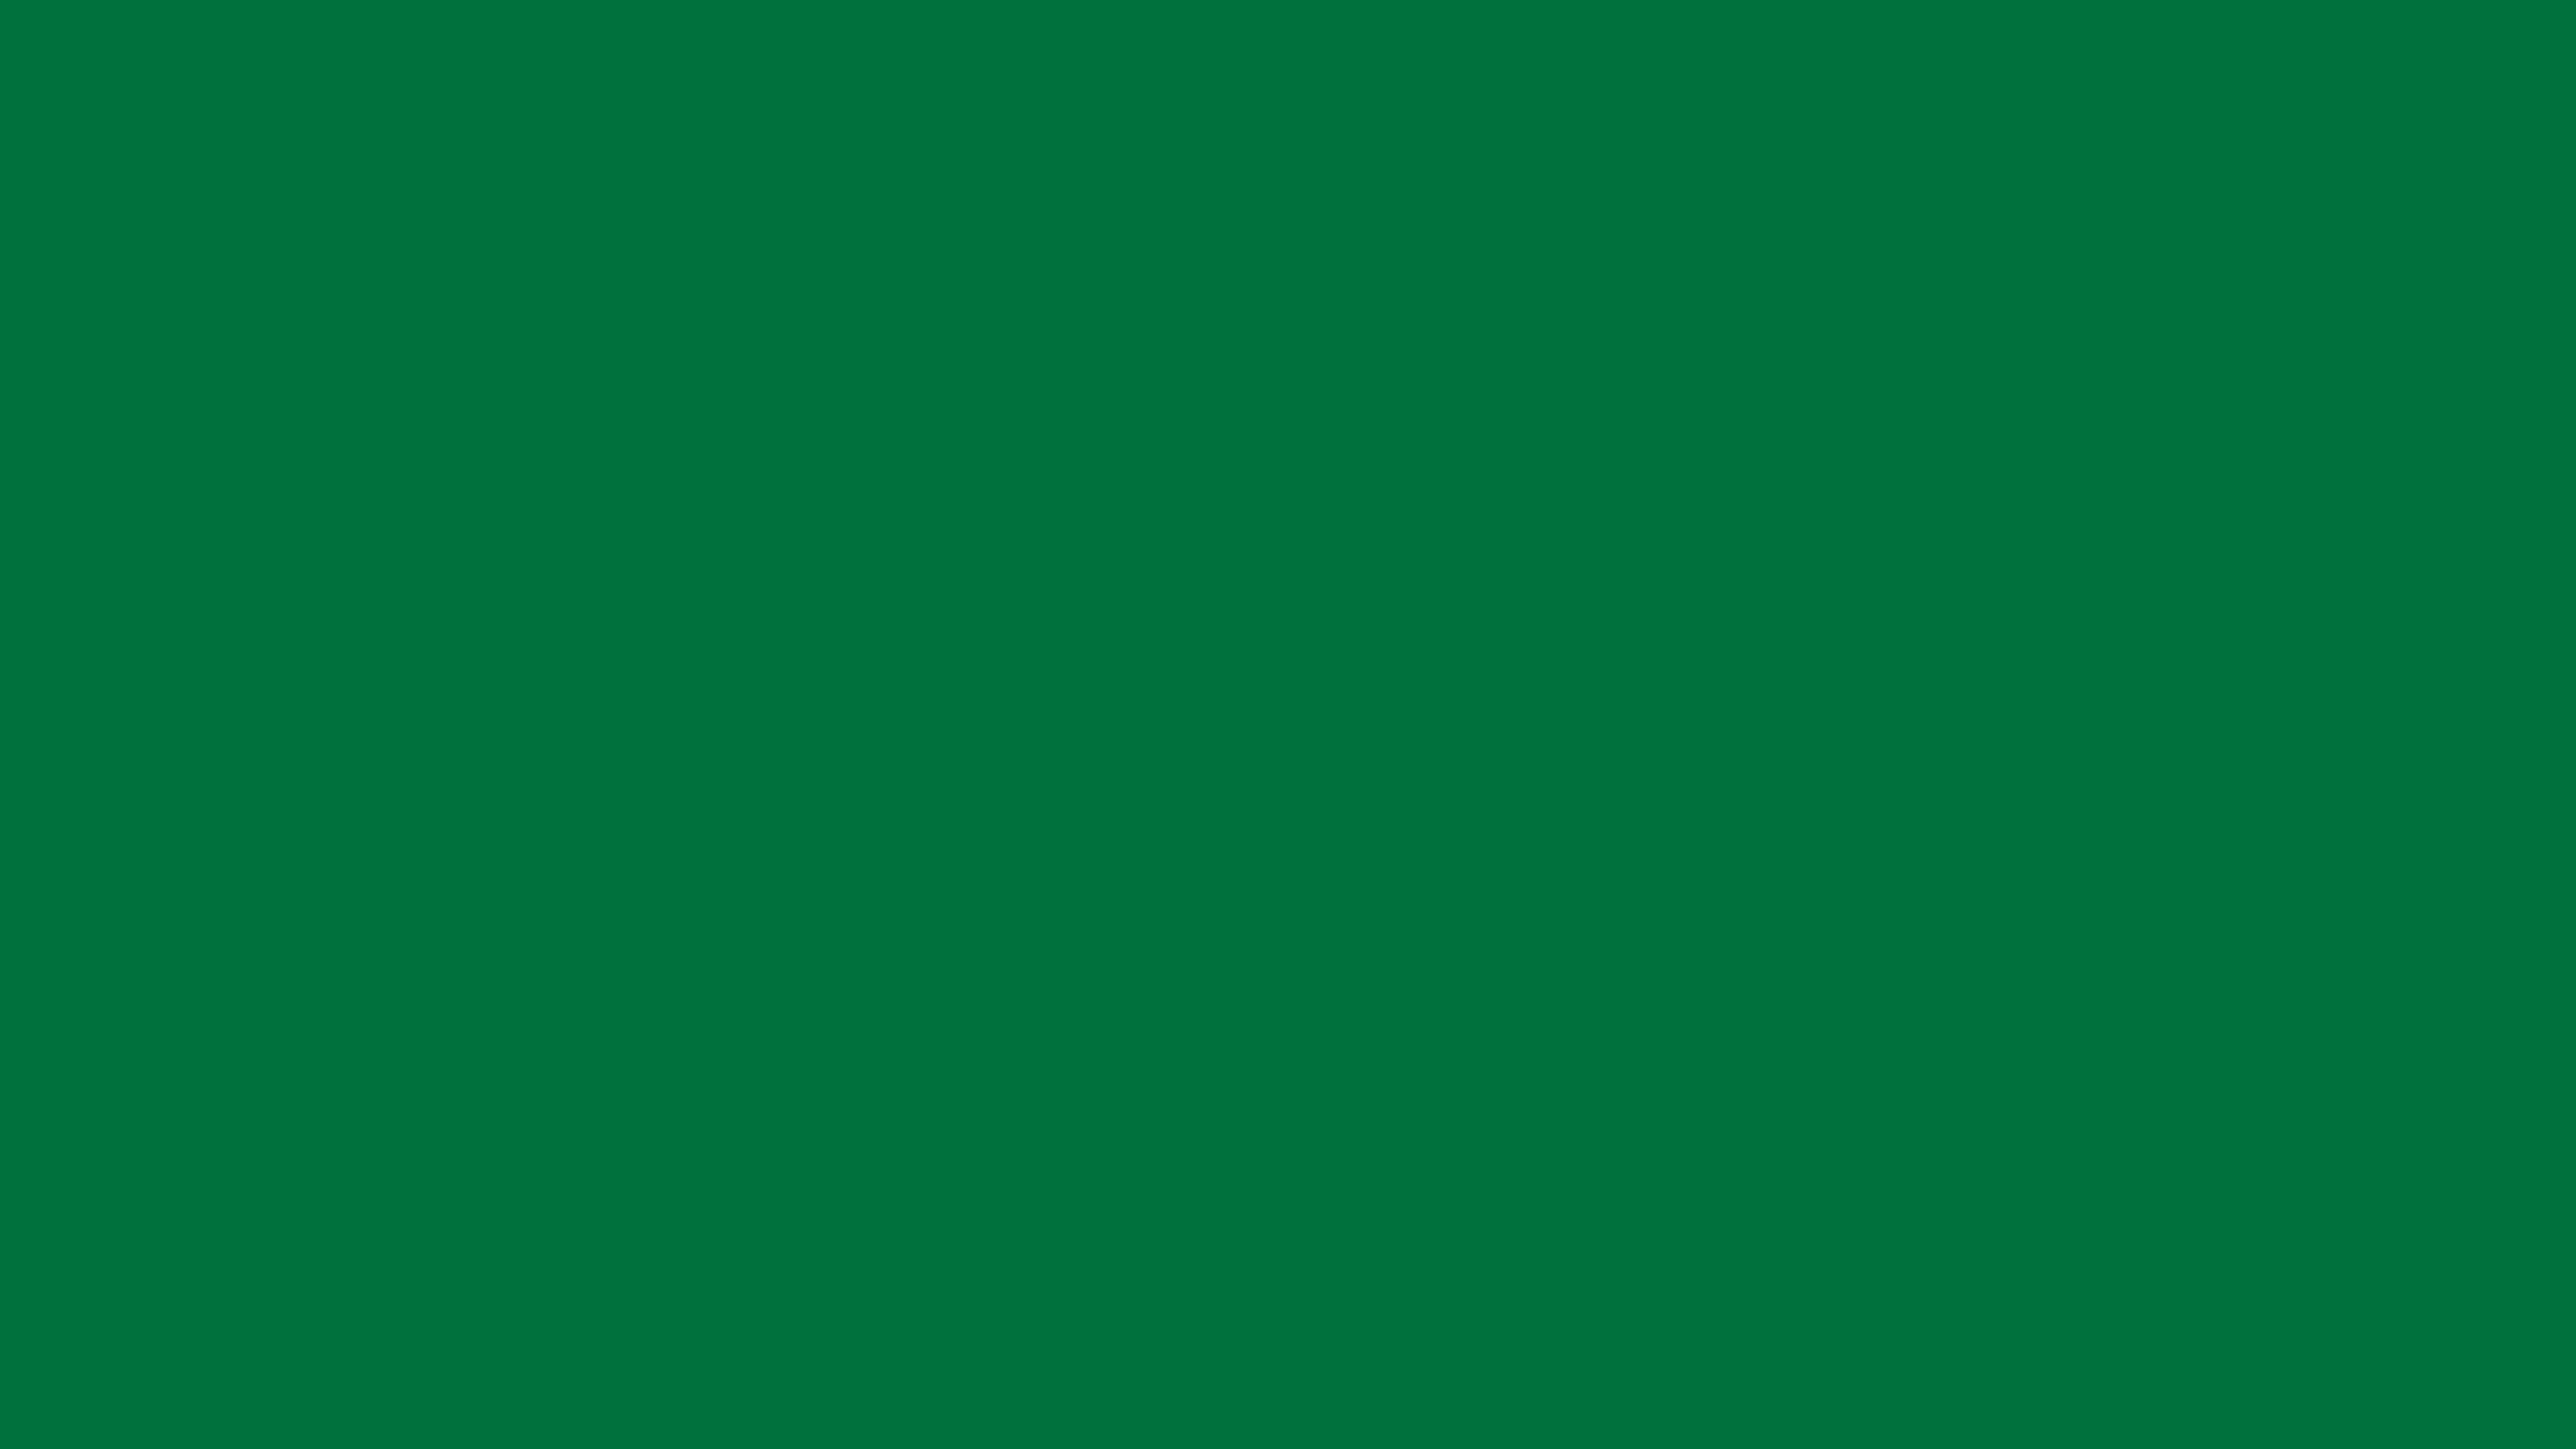 4096x2304 Dartmouth Green Solid Color Background